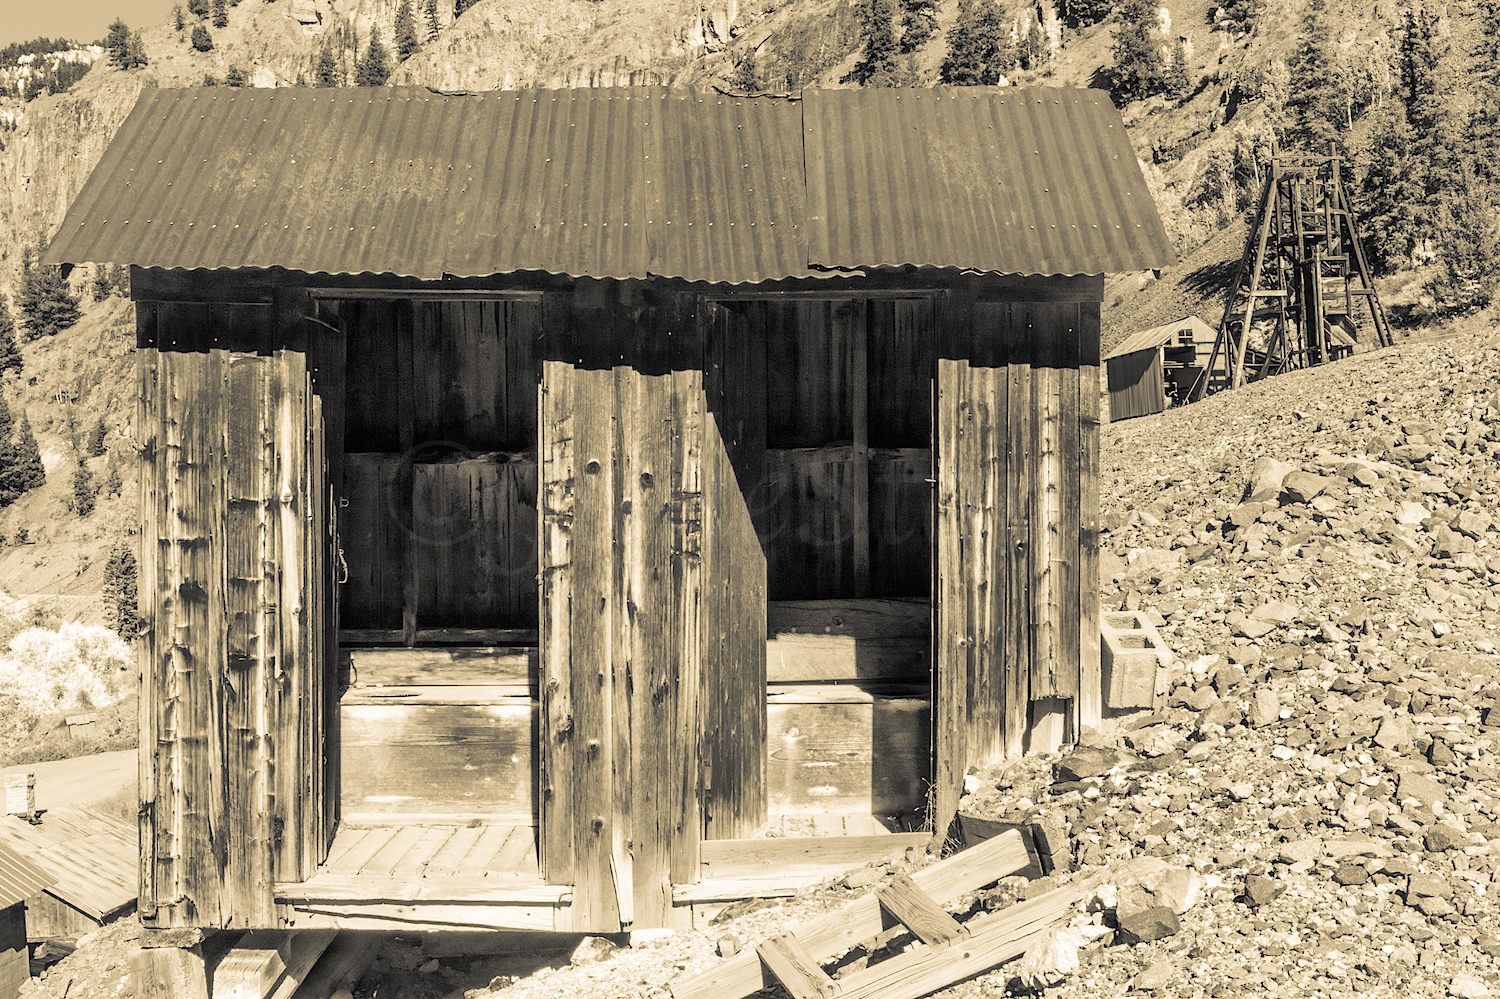 Outhouse at Henson Ghost Town, Image # 5107